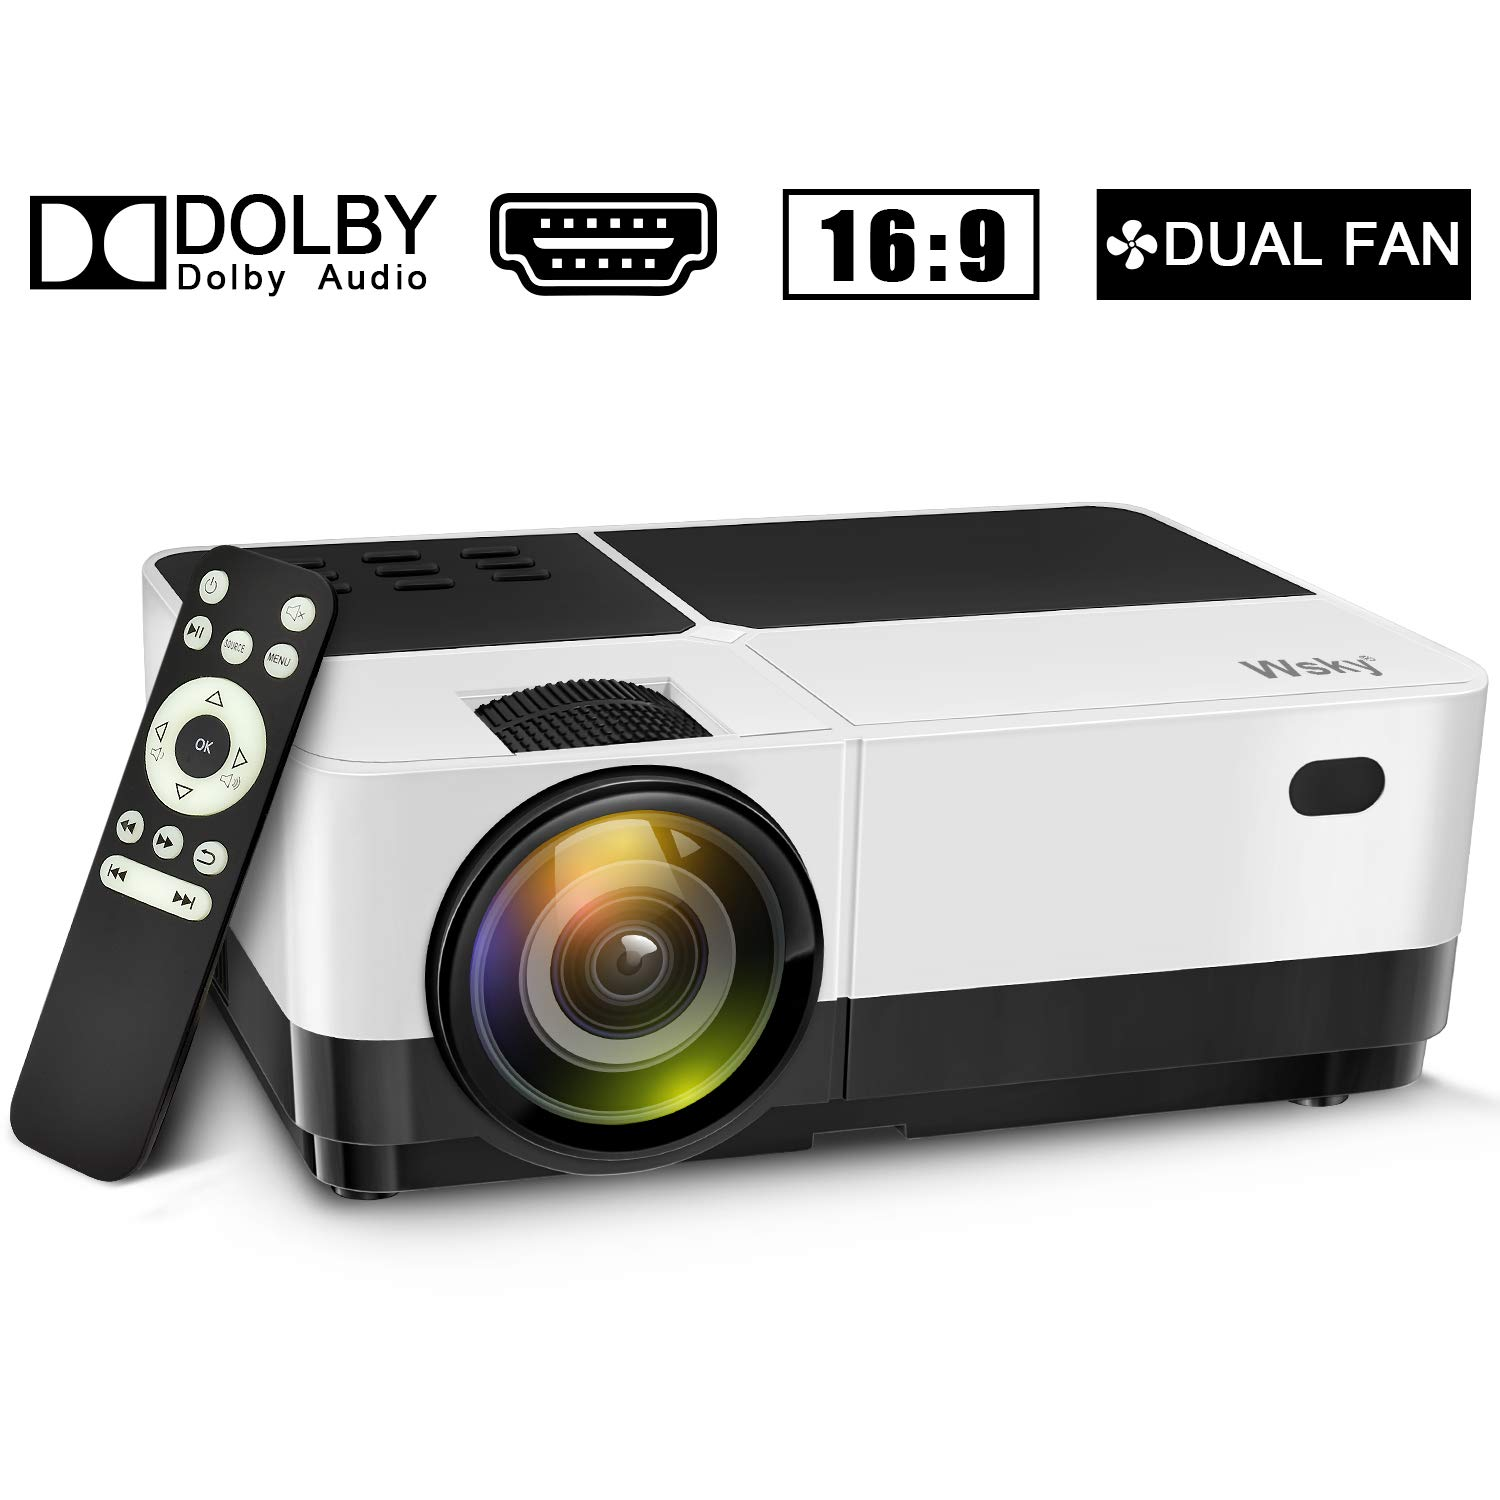 Wsky Video Portable Projector